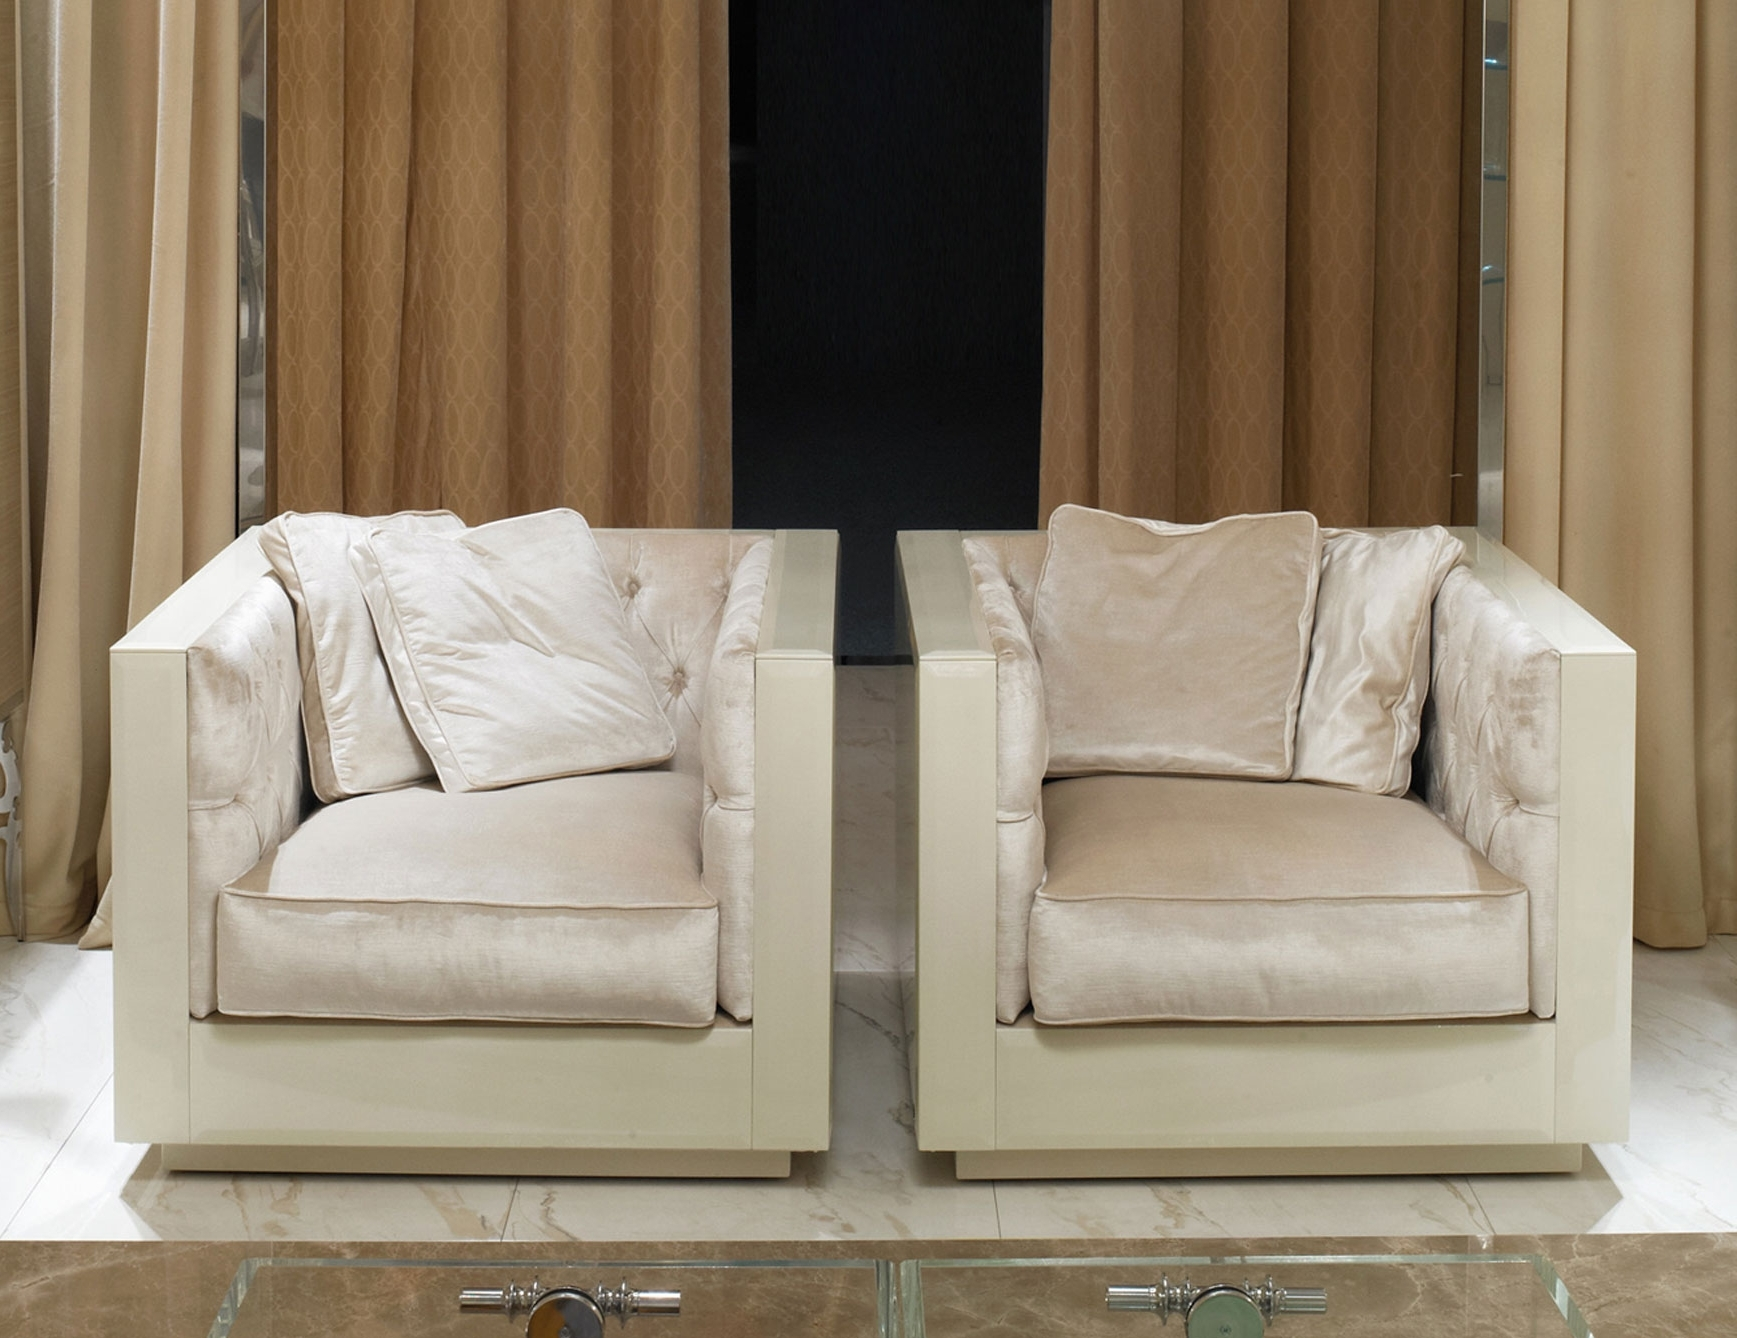 Most Recent Wide Sofa Chairs Inside Nella Vetrina Visionnaire Ipe Cavalli Evelake Luxury Italian Chair (View 6 of 20)